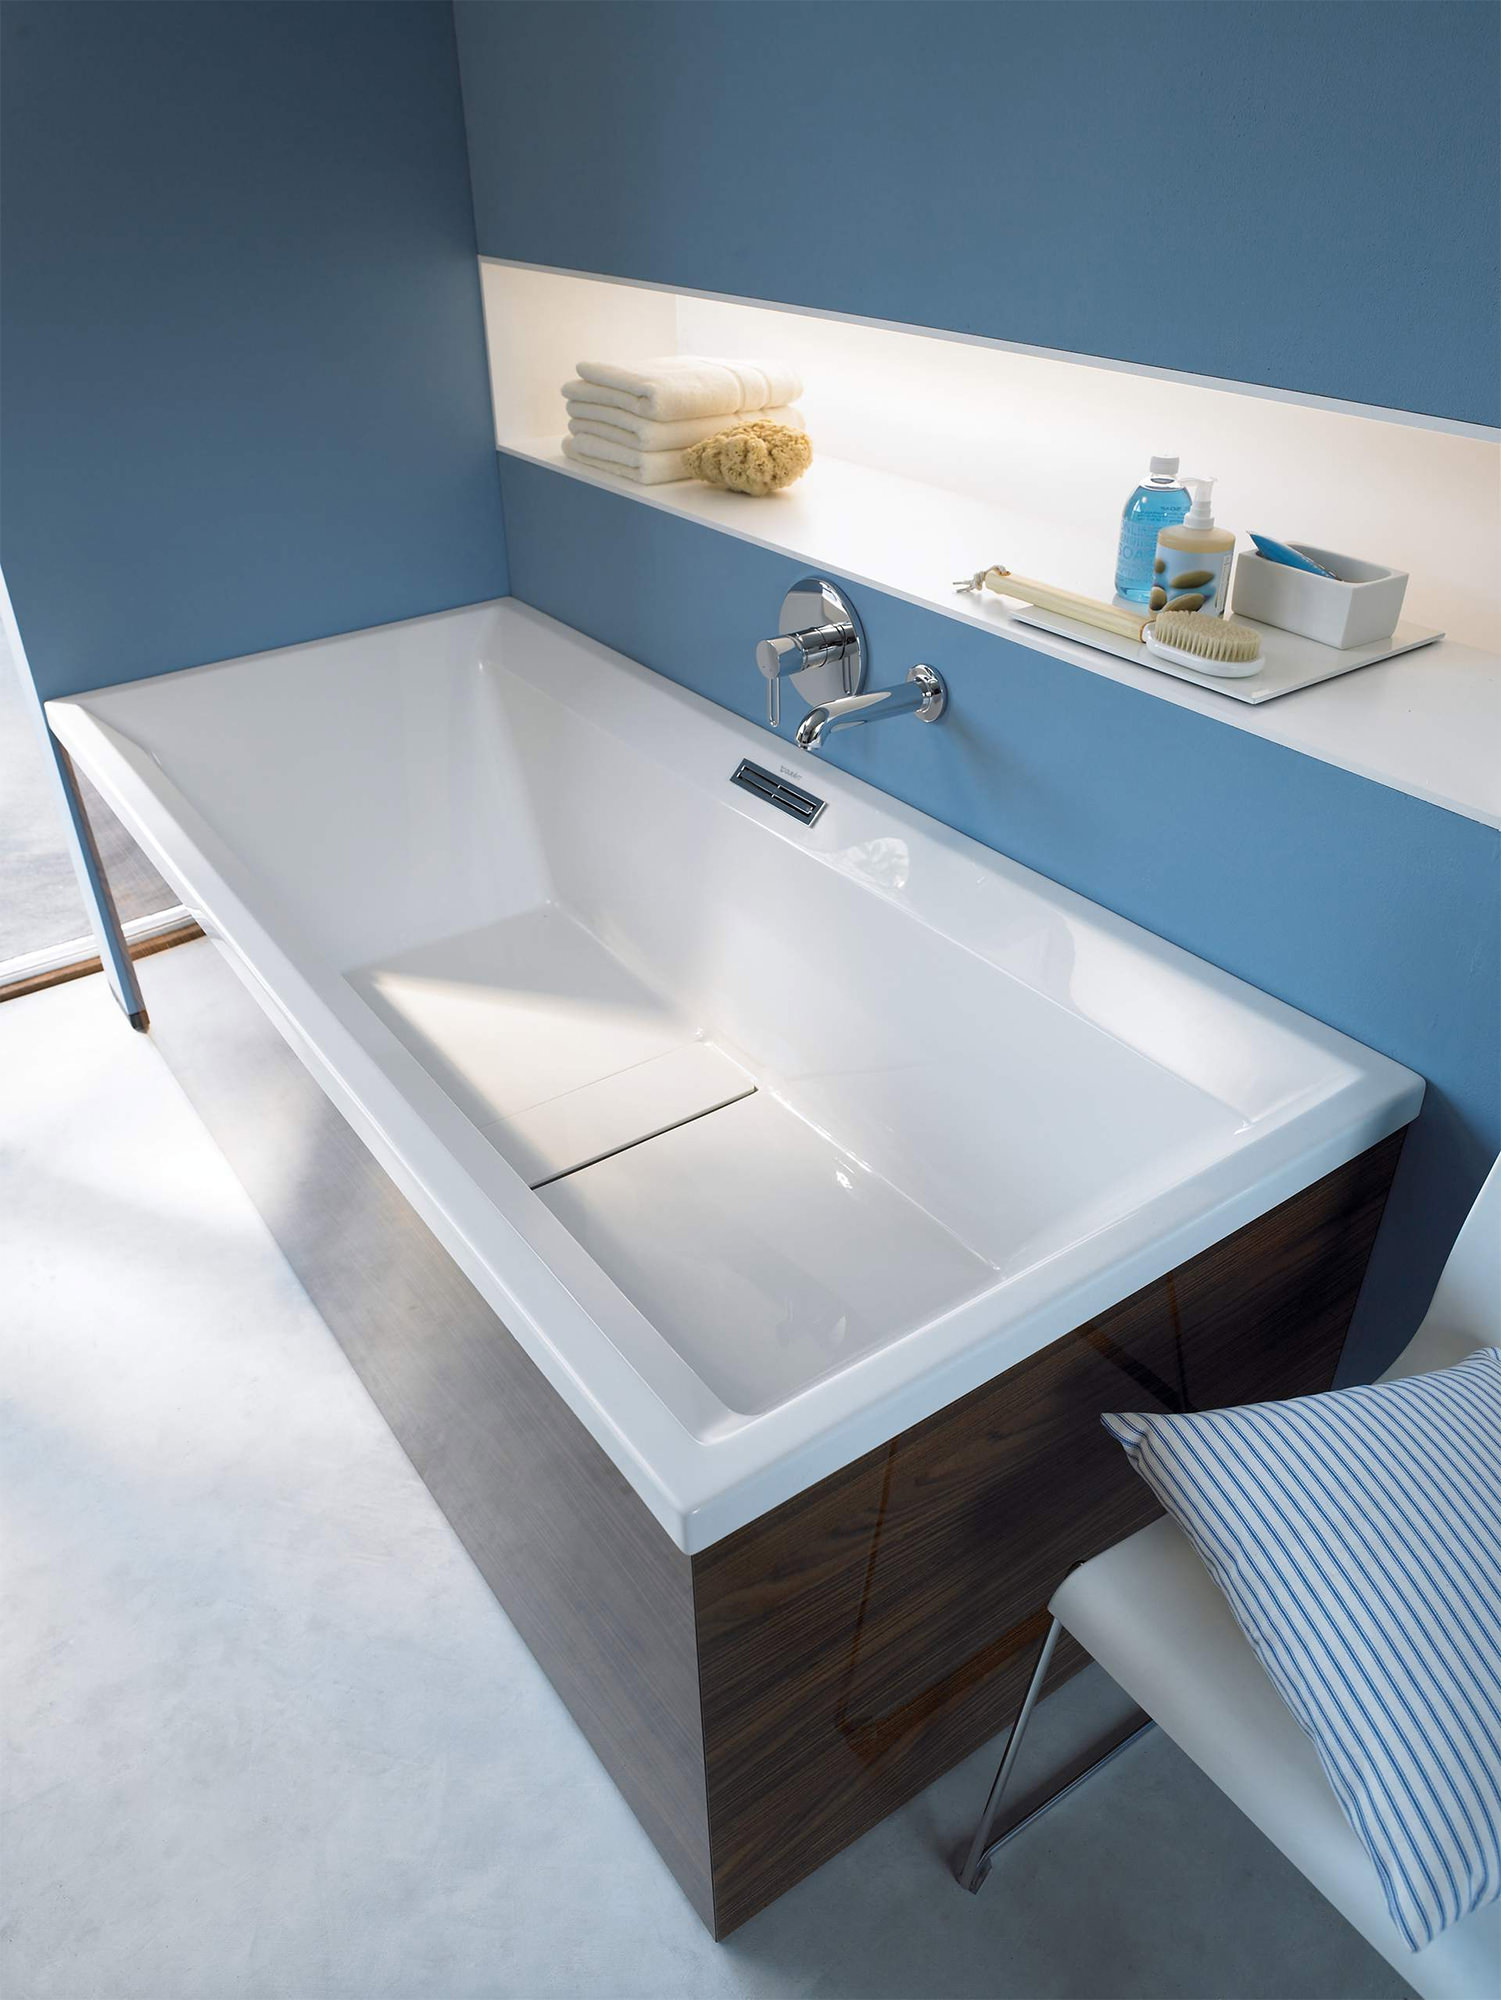 Duravit 2nd Floor Built In 1900 X 900mm Bath 700160000000000